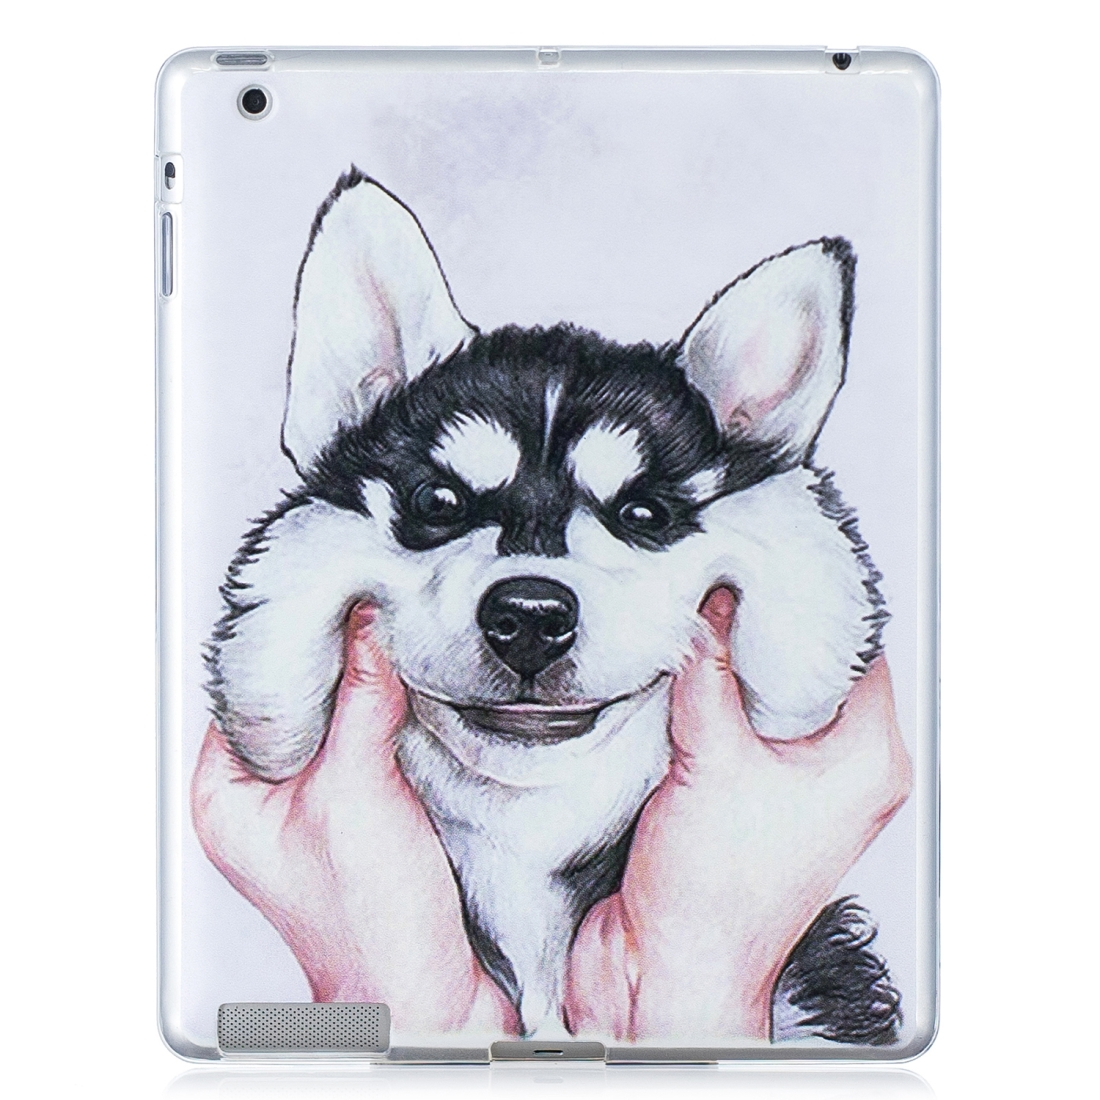 iPad 2 Case, Fits iPad 2, 3, 4,  Artistic Patterned Durable Protective Case (Husky)